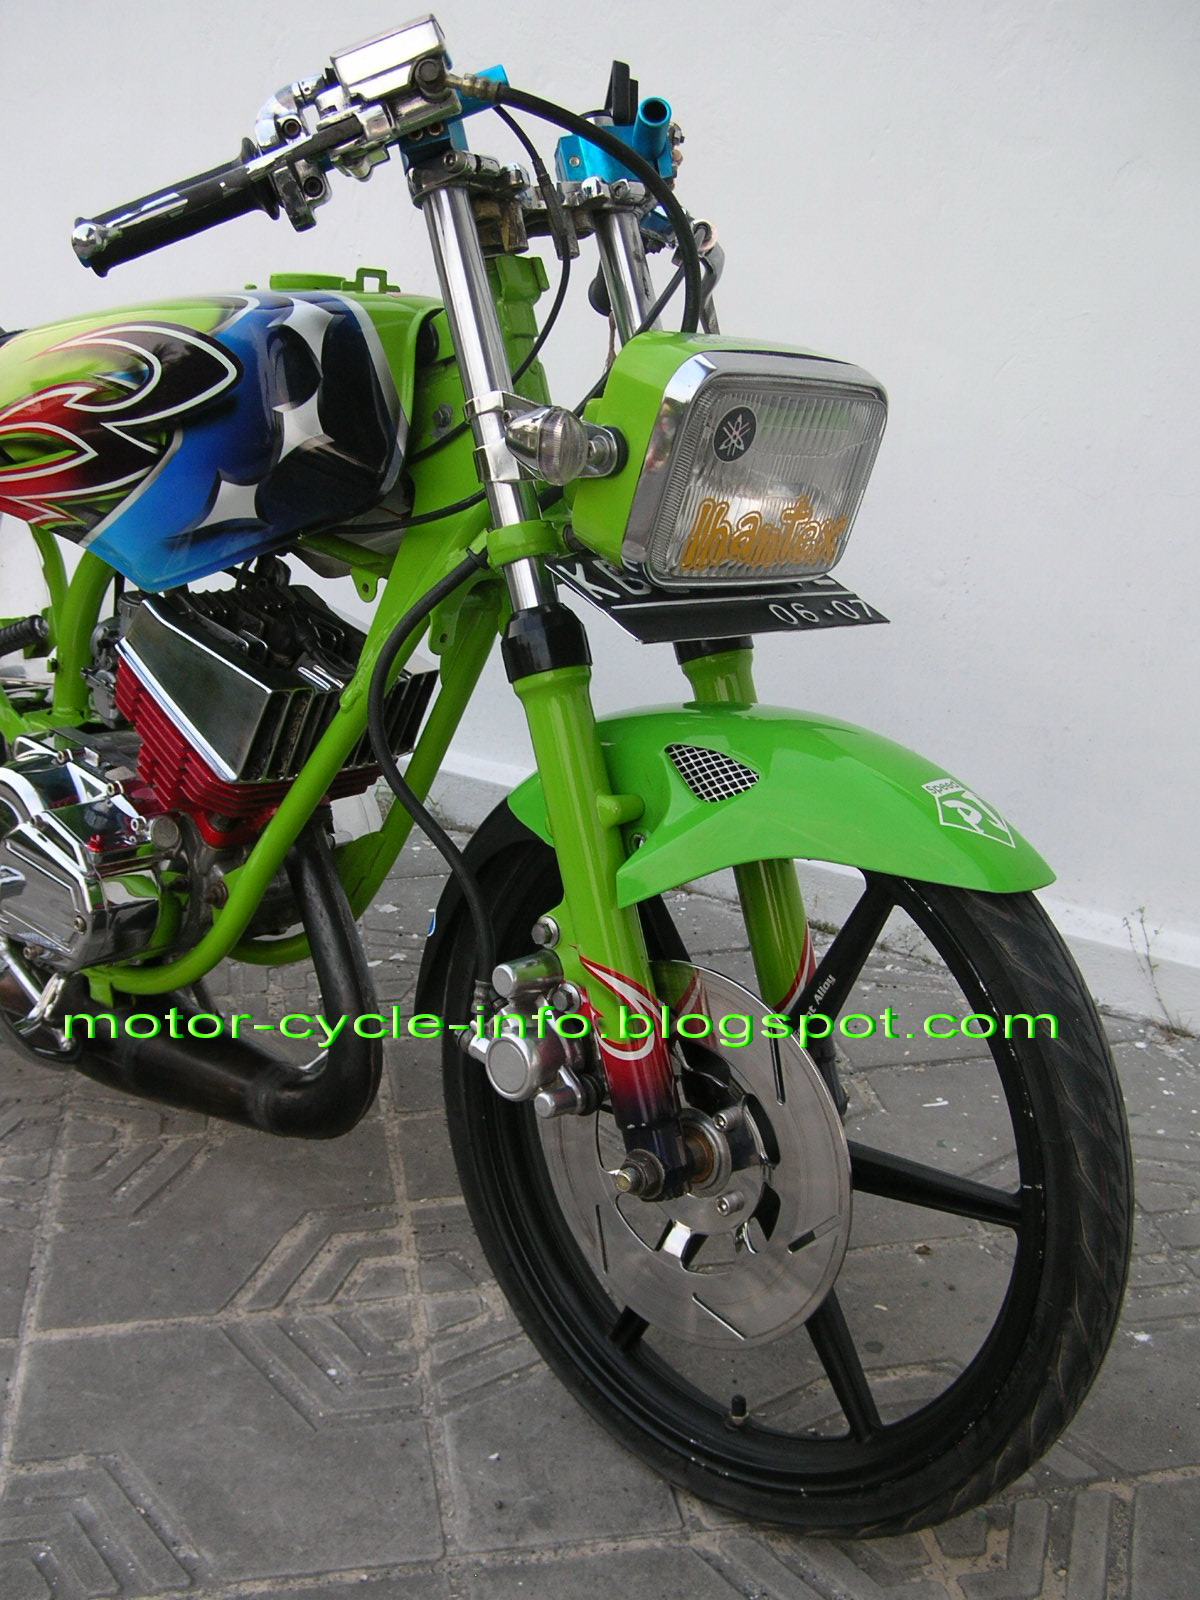 Modifikasi Motor King Extreme Airbrush Motorcycle Case